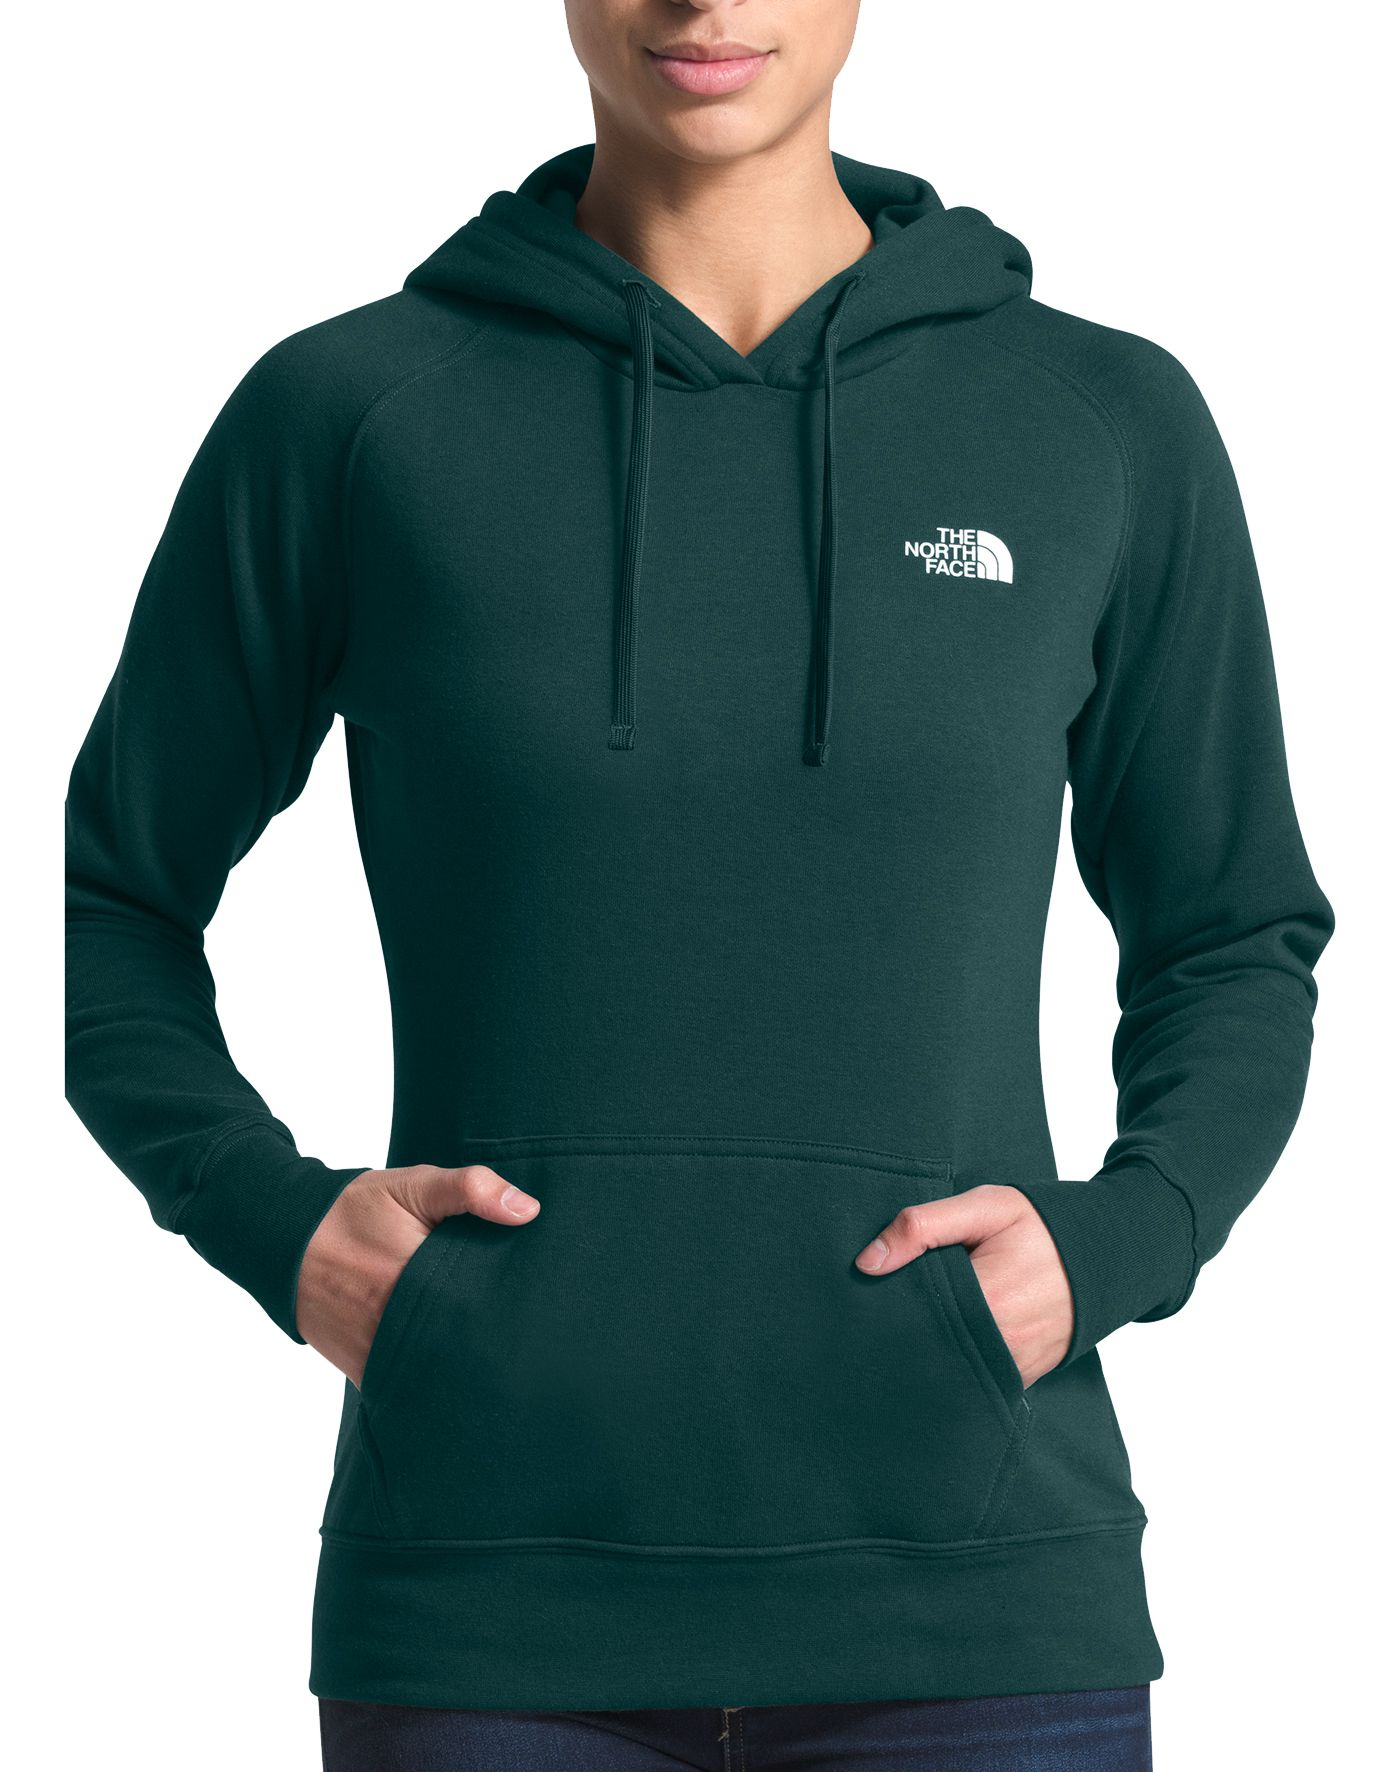 The North Face Women's Red Box Hoodie